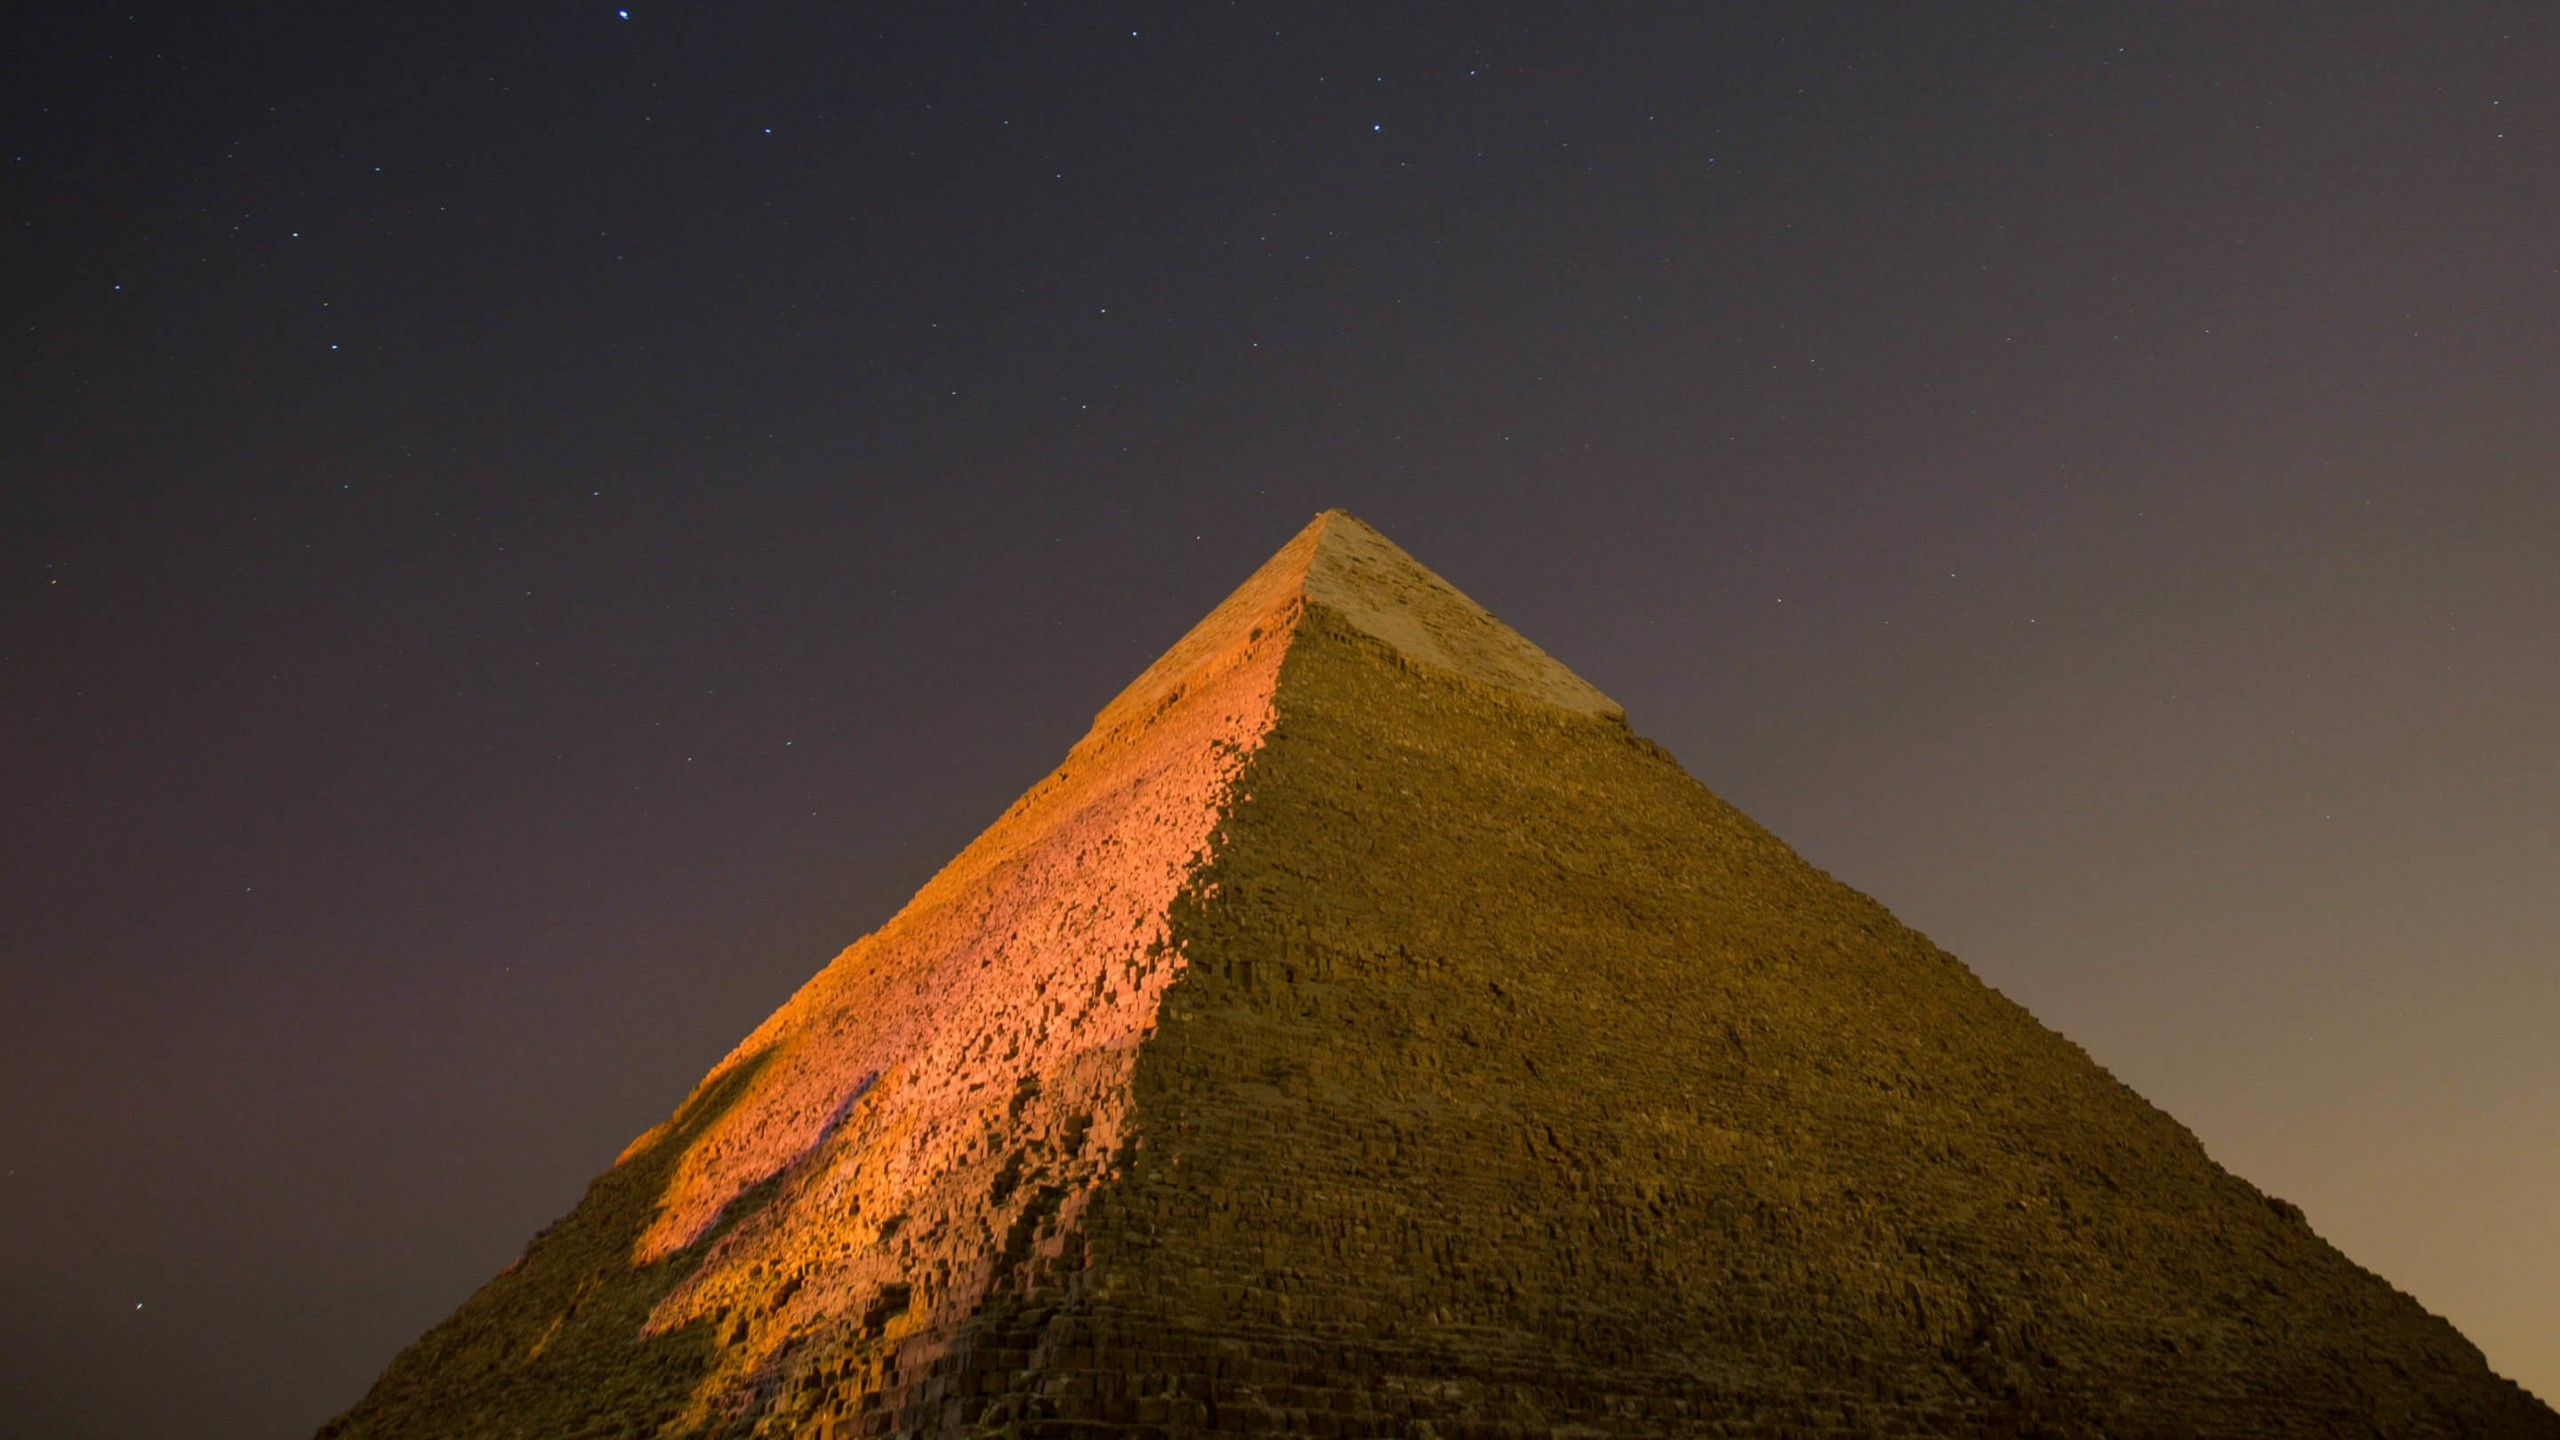 Pyramid by Night Wallpaper for Social Media YouTube Channel Art